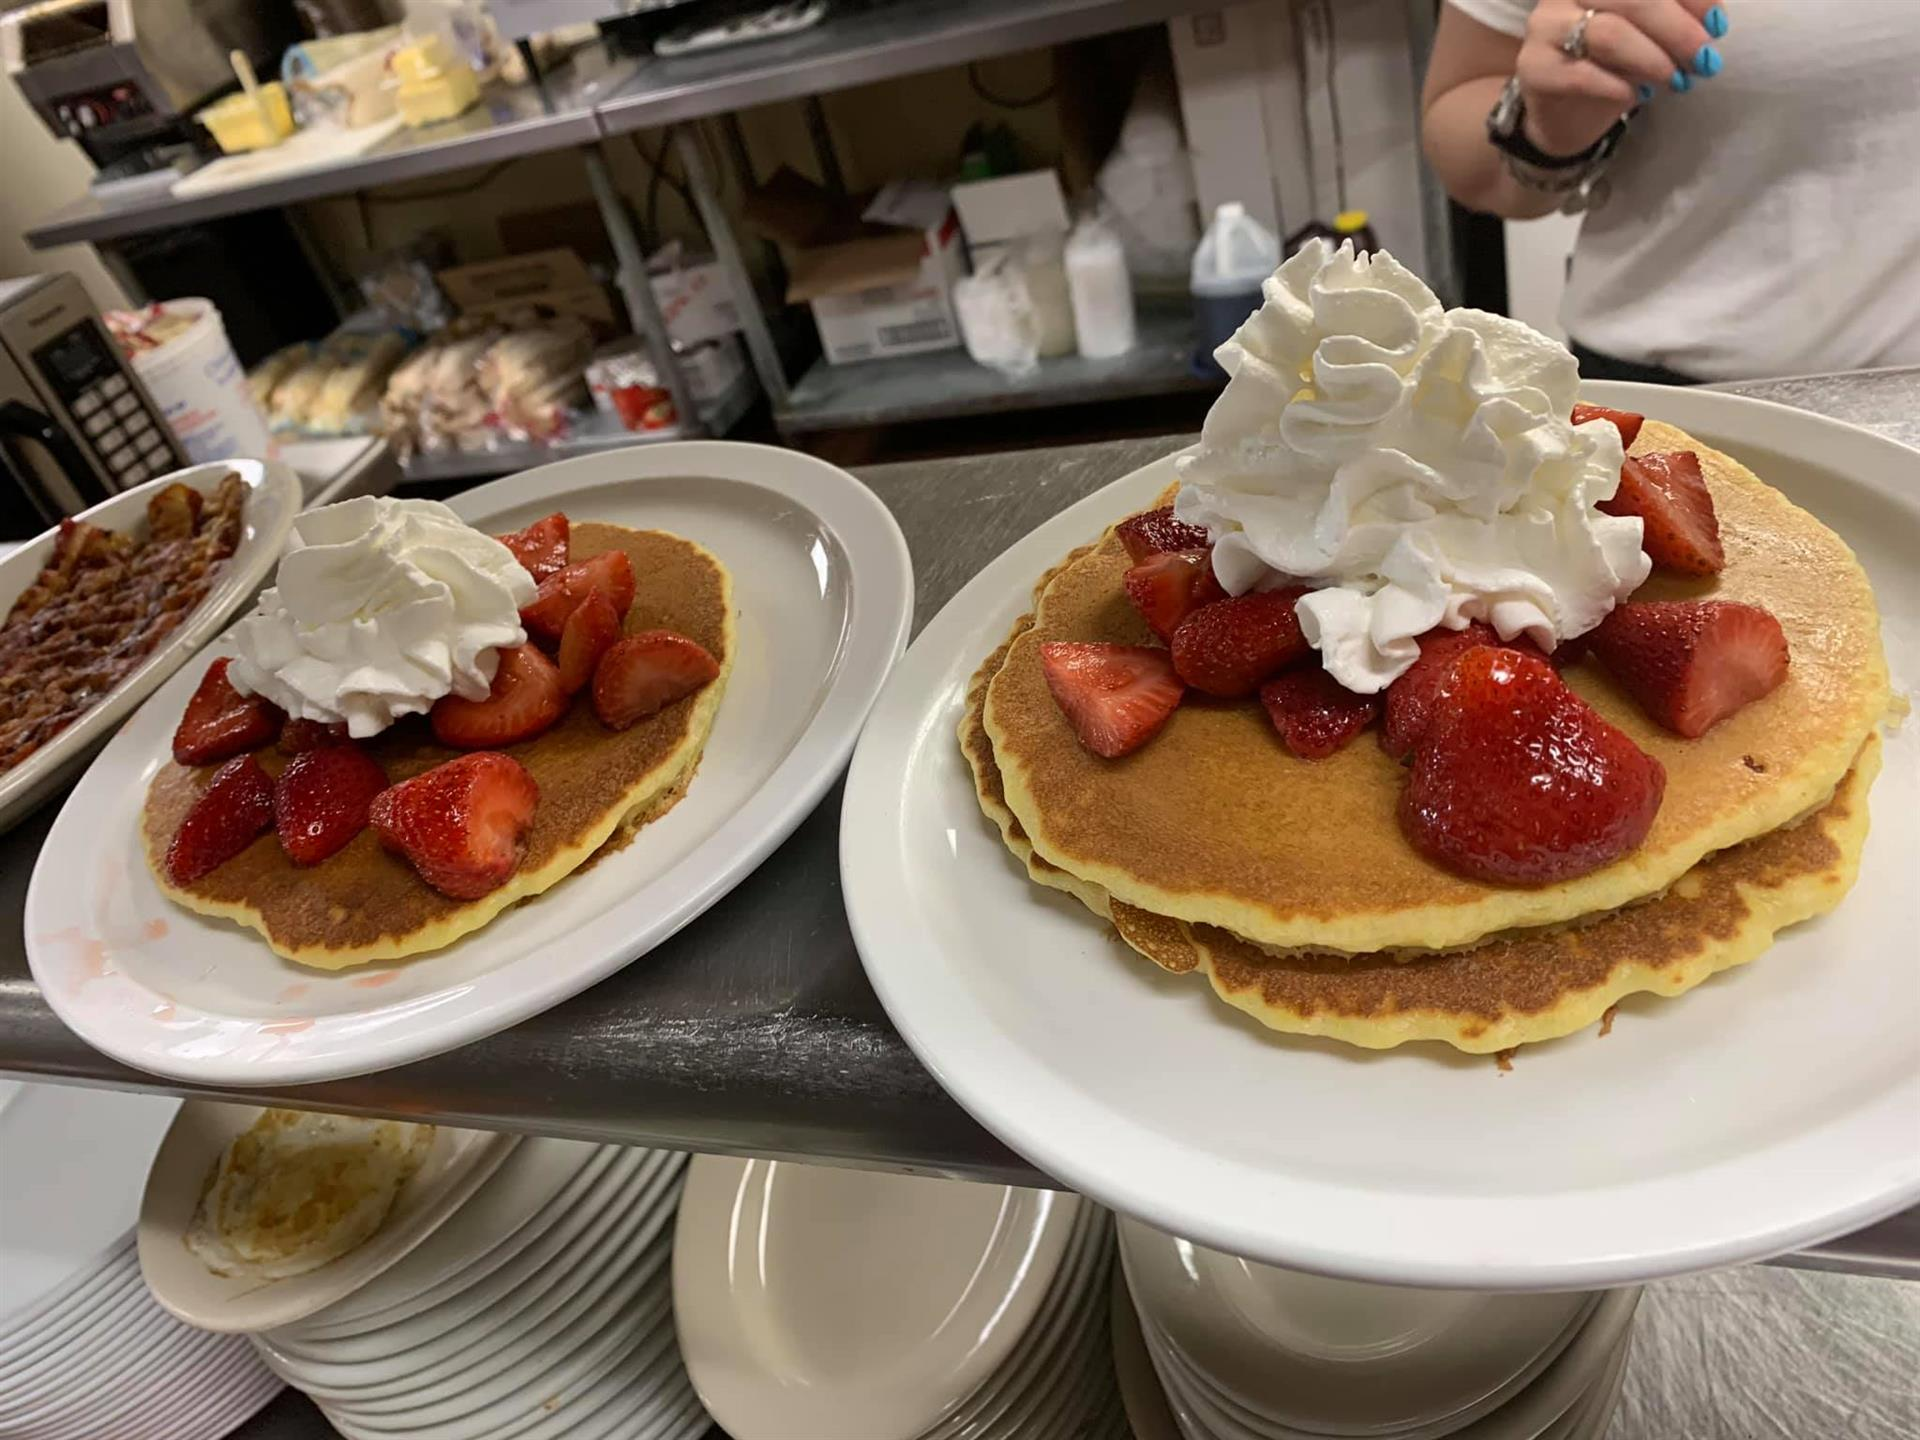 Pancakes topped with whipped cream and strawberries